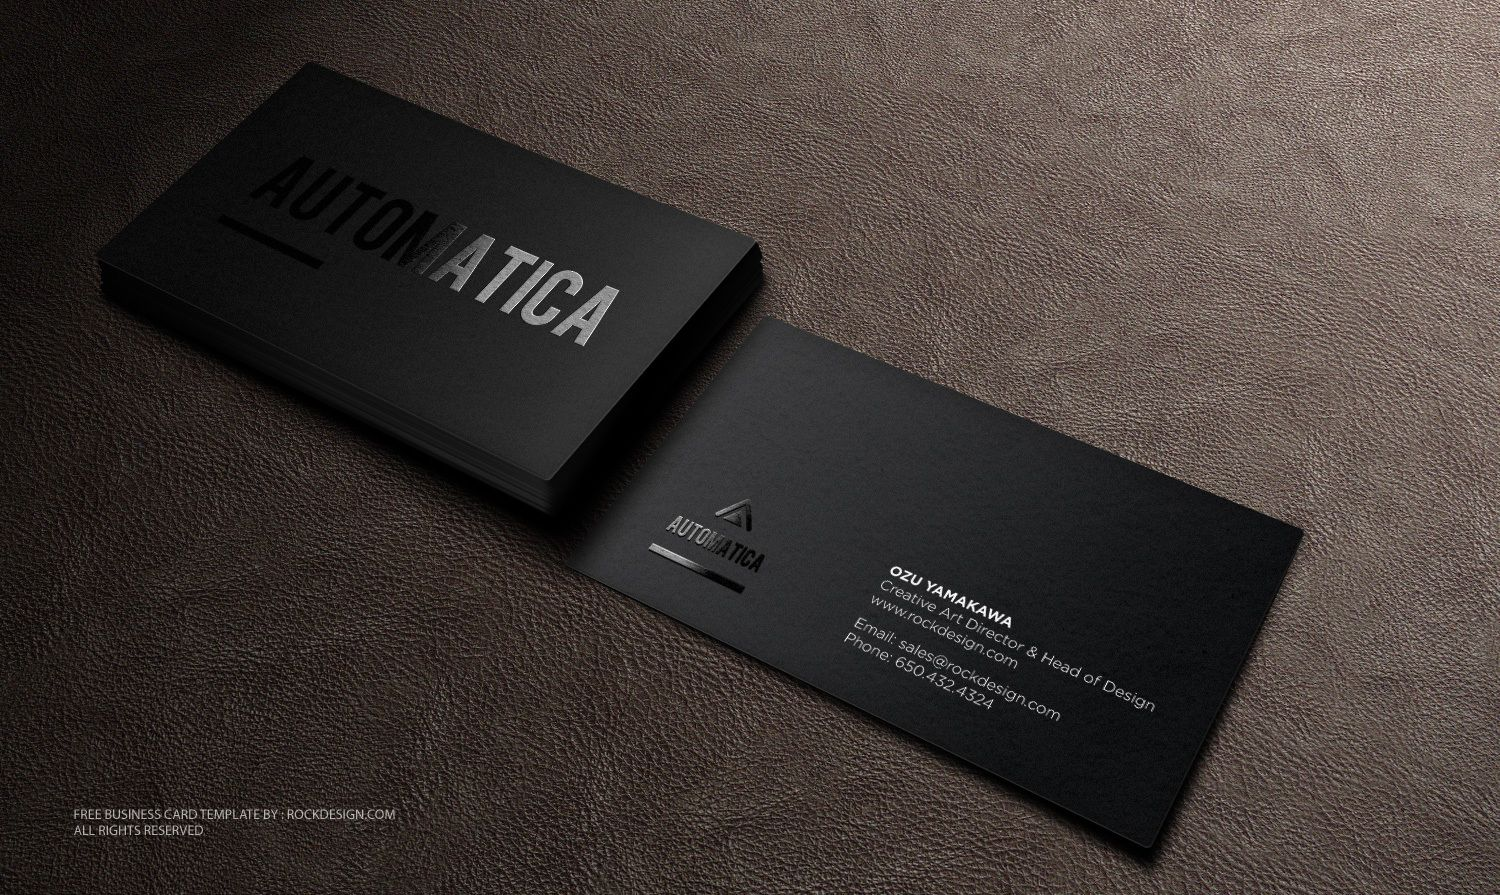 Black business card template download free design templates black business card template download free design templates flashek Gallery